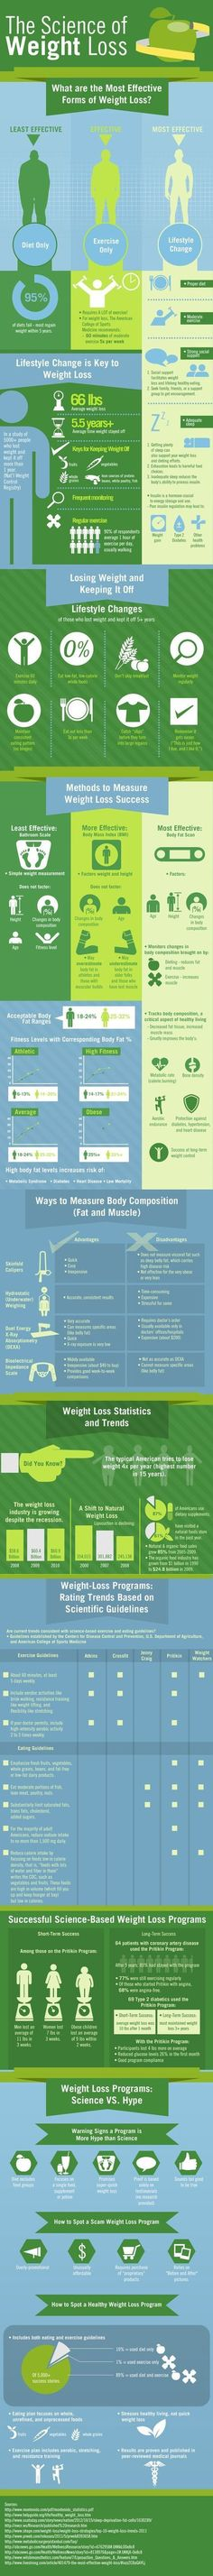 The Science of Weight Loss. Perhaps you started the year with good intentions to drop a few pounds but it just hasn't worked out as you want it. This infographic helps you to understand what you've done wrong.